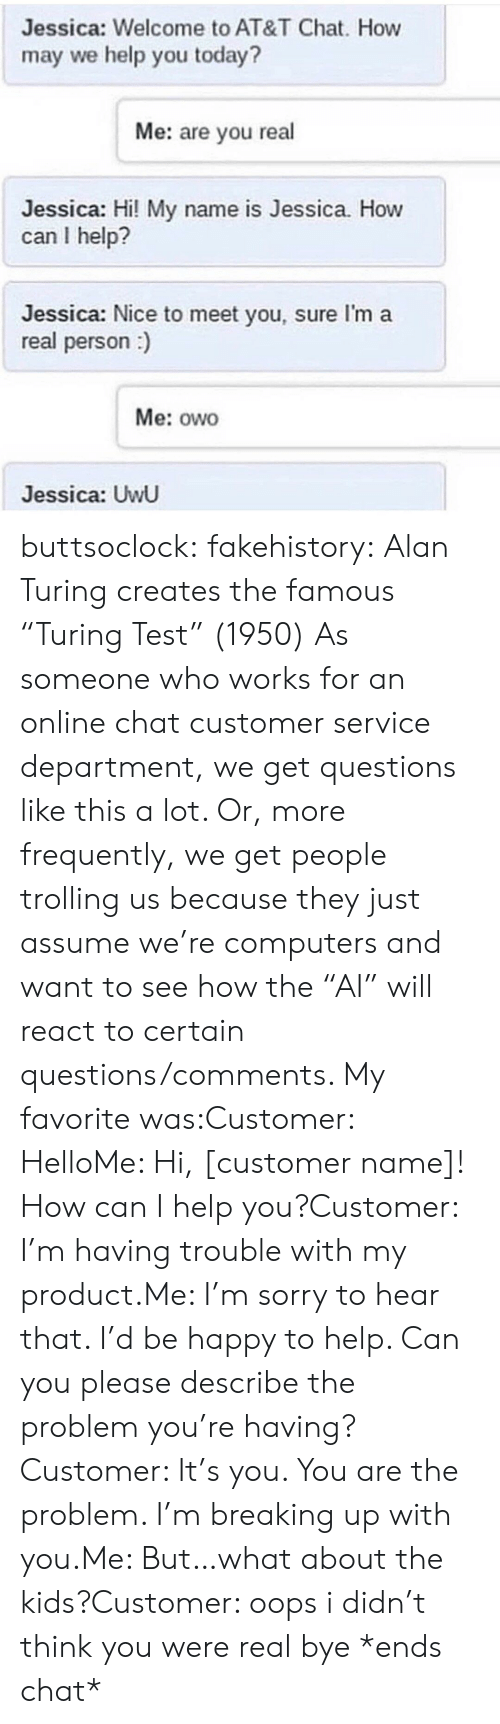 """can i help you: Jessica: Welcome to AT&T Chat. How  may we help you today?  Me: are you real  Jessica: Hi! My name is Jessica. How  can I help?  Jessica: Nice to meet you, sure I'm a  real person)  Me: owo  Jessica: UwU buttsoclock:  fakehistory: Alan Turing creates the famous """"Turing Test"""" (1950) As someone who works for an online chat customer service department, we get questions like this a lot. Or, more frequently, we get people trolling us because they just assume we're computers and want to see how the""""AI"""" will react to certain questions/comments. My favorite was:Customer: HelloMe: Hi, [customer name]! How can I help you?Customer: I'm having trouble with my product.Me: I'm sorry to hear that. I'd be happy to help. Can you please describe the problem you're having?Customer: It's you. You are the problem. I'm breaking up with you.Me: But…what about the kids?Customer: oops i didn't think you were real bye *ends chat*"""